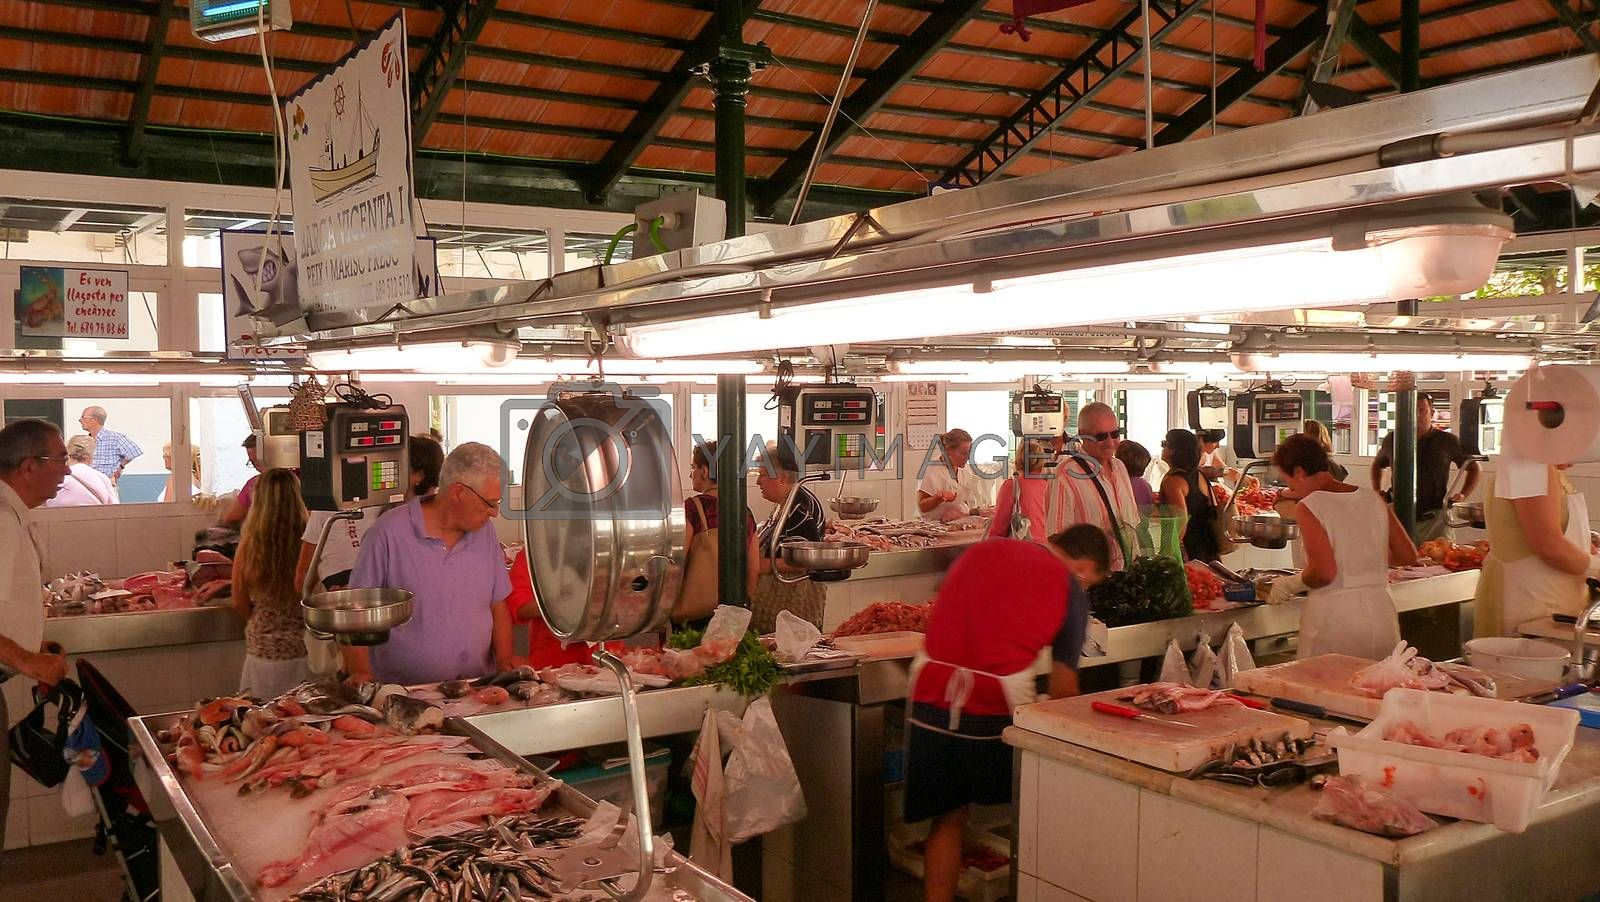 Menorca, Spain - june 28 - 2012 - View of the fish market in Ciutadella de Menorca, with various colorful fish for sale in the  foreground and tourist customers